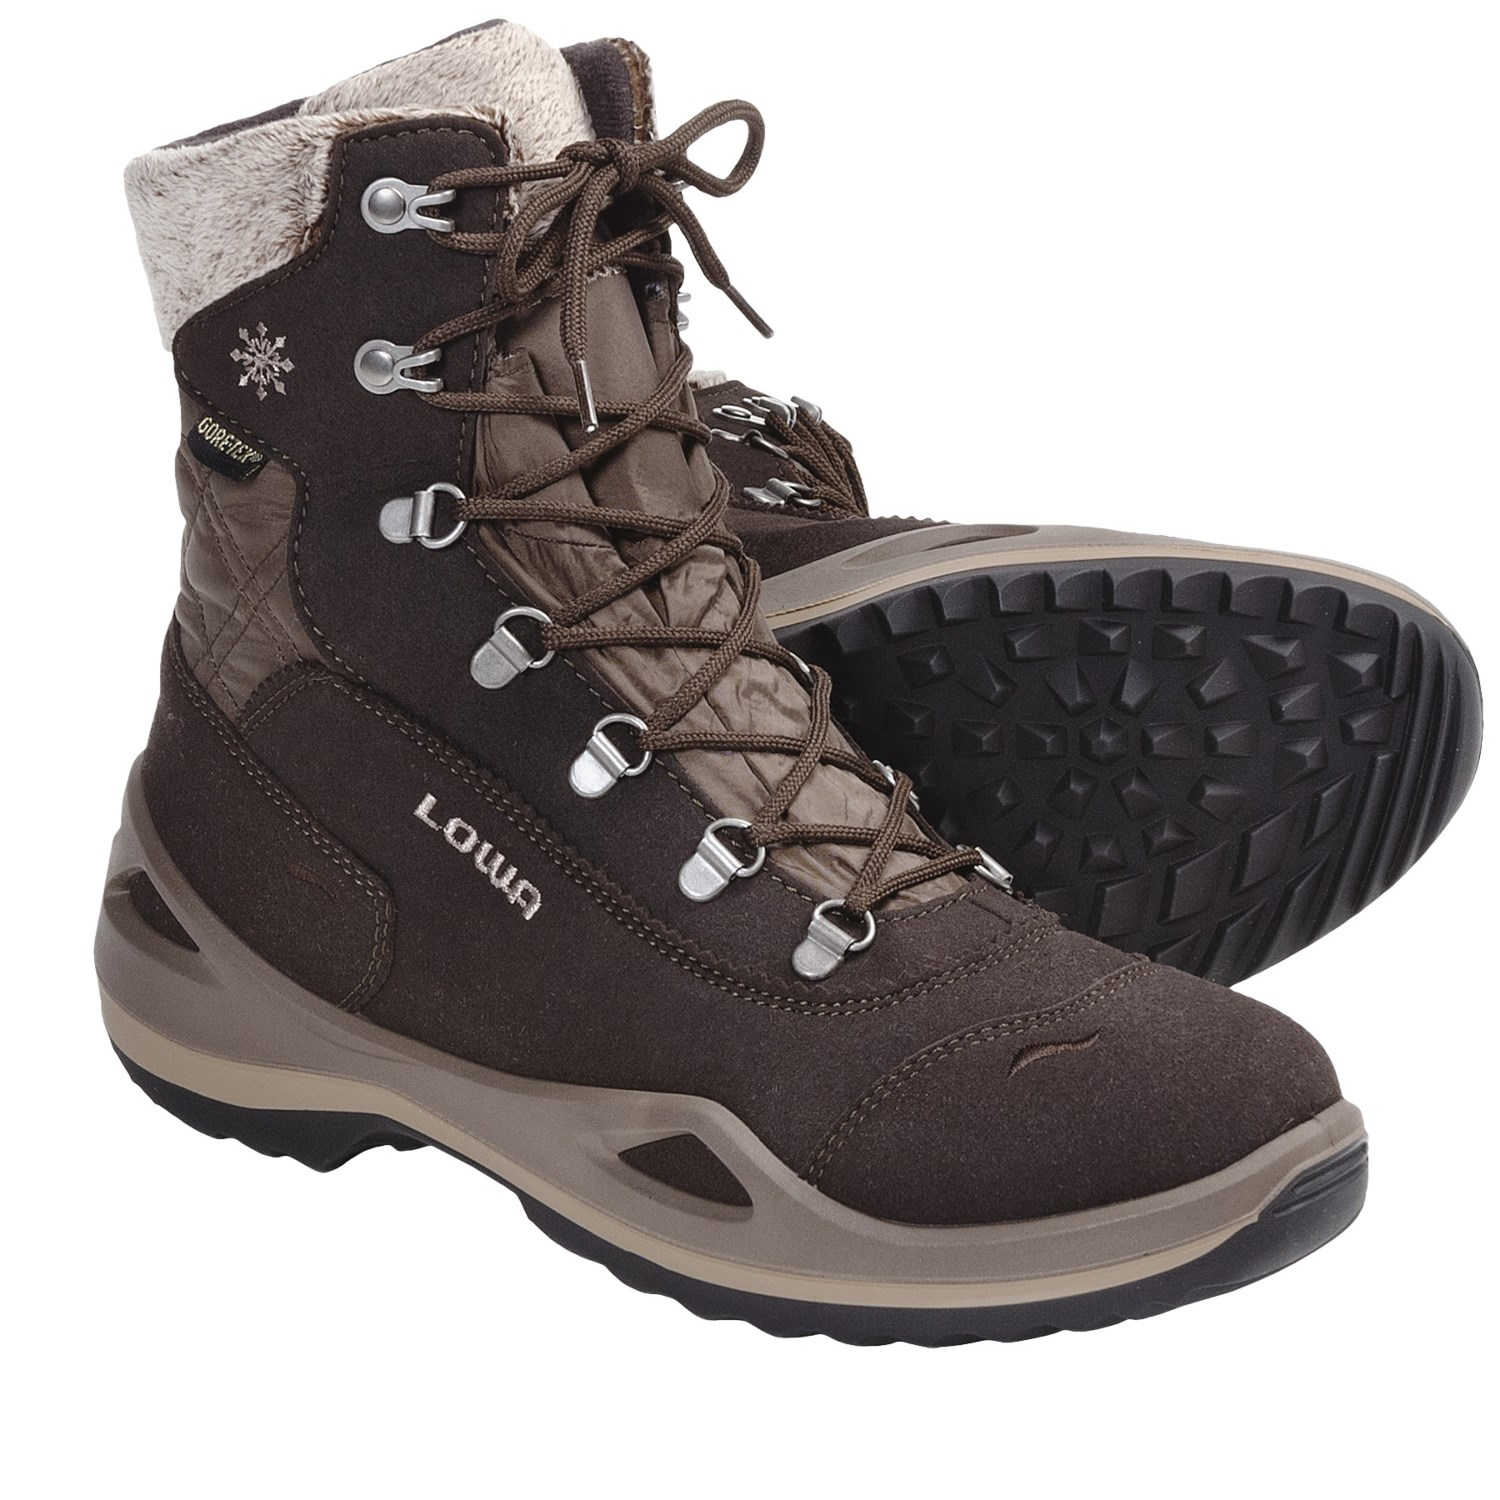 Amazing Asolo Mystic GoreTex Suede Boots  Waterproof For Women In Silver